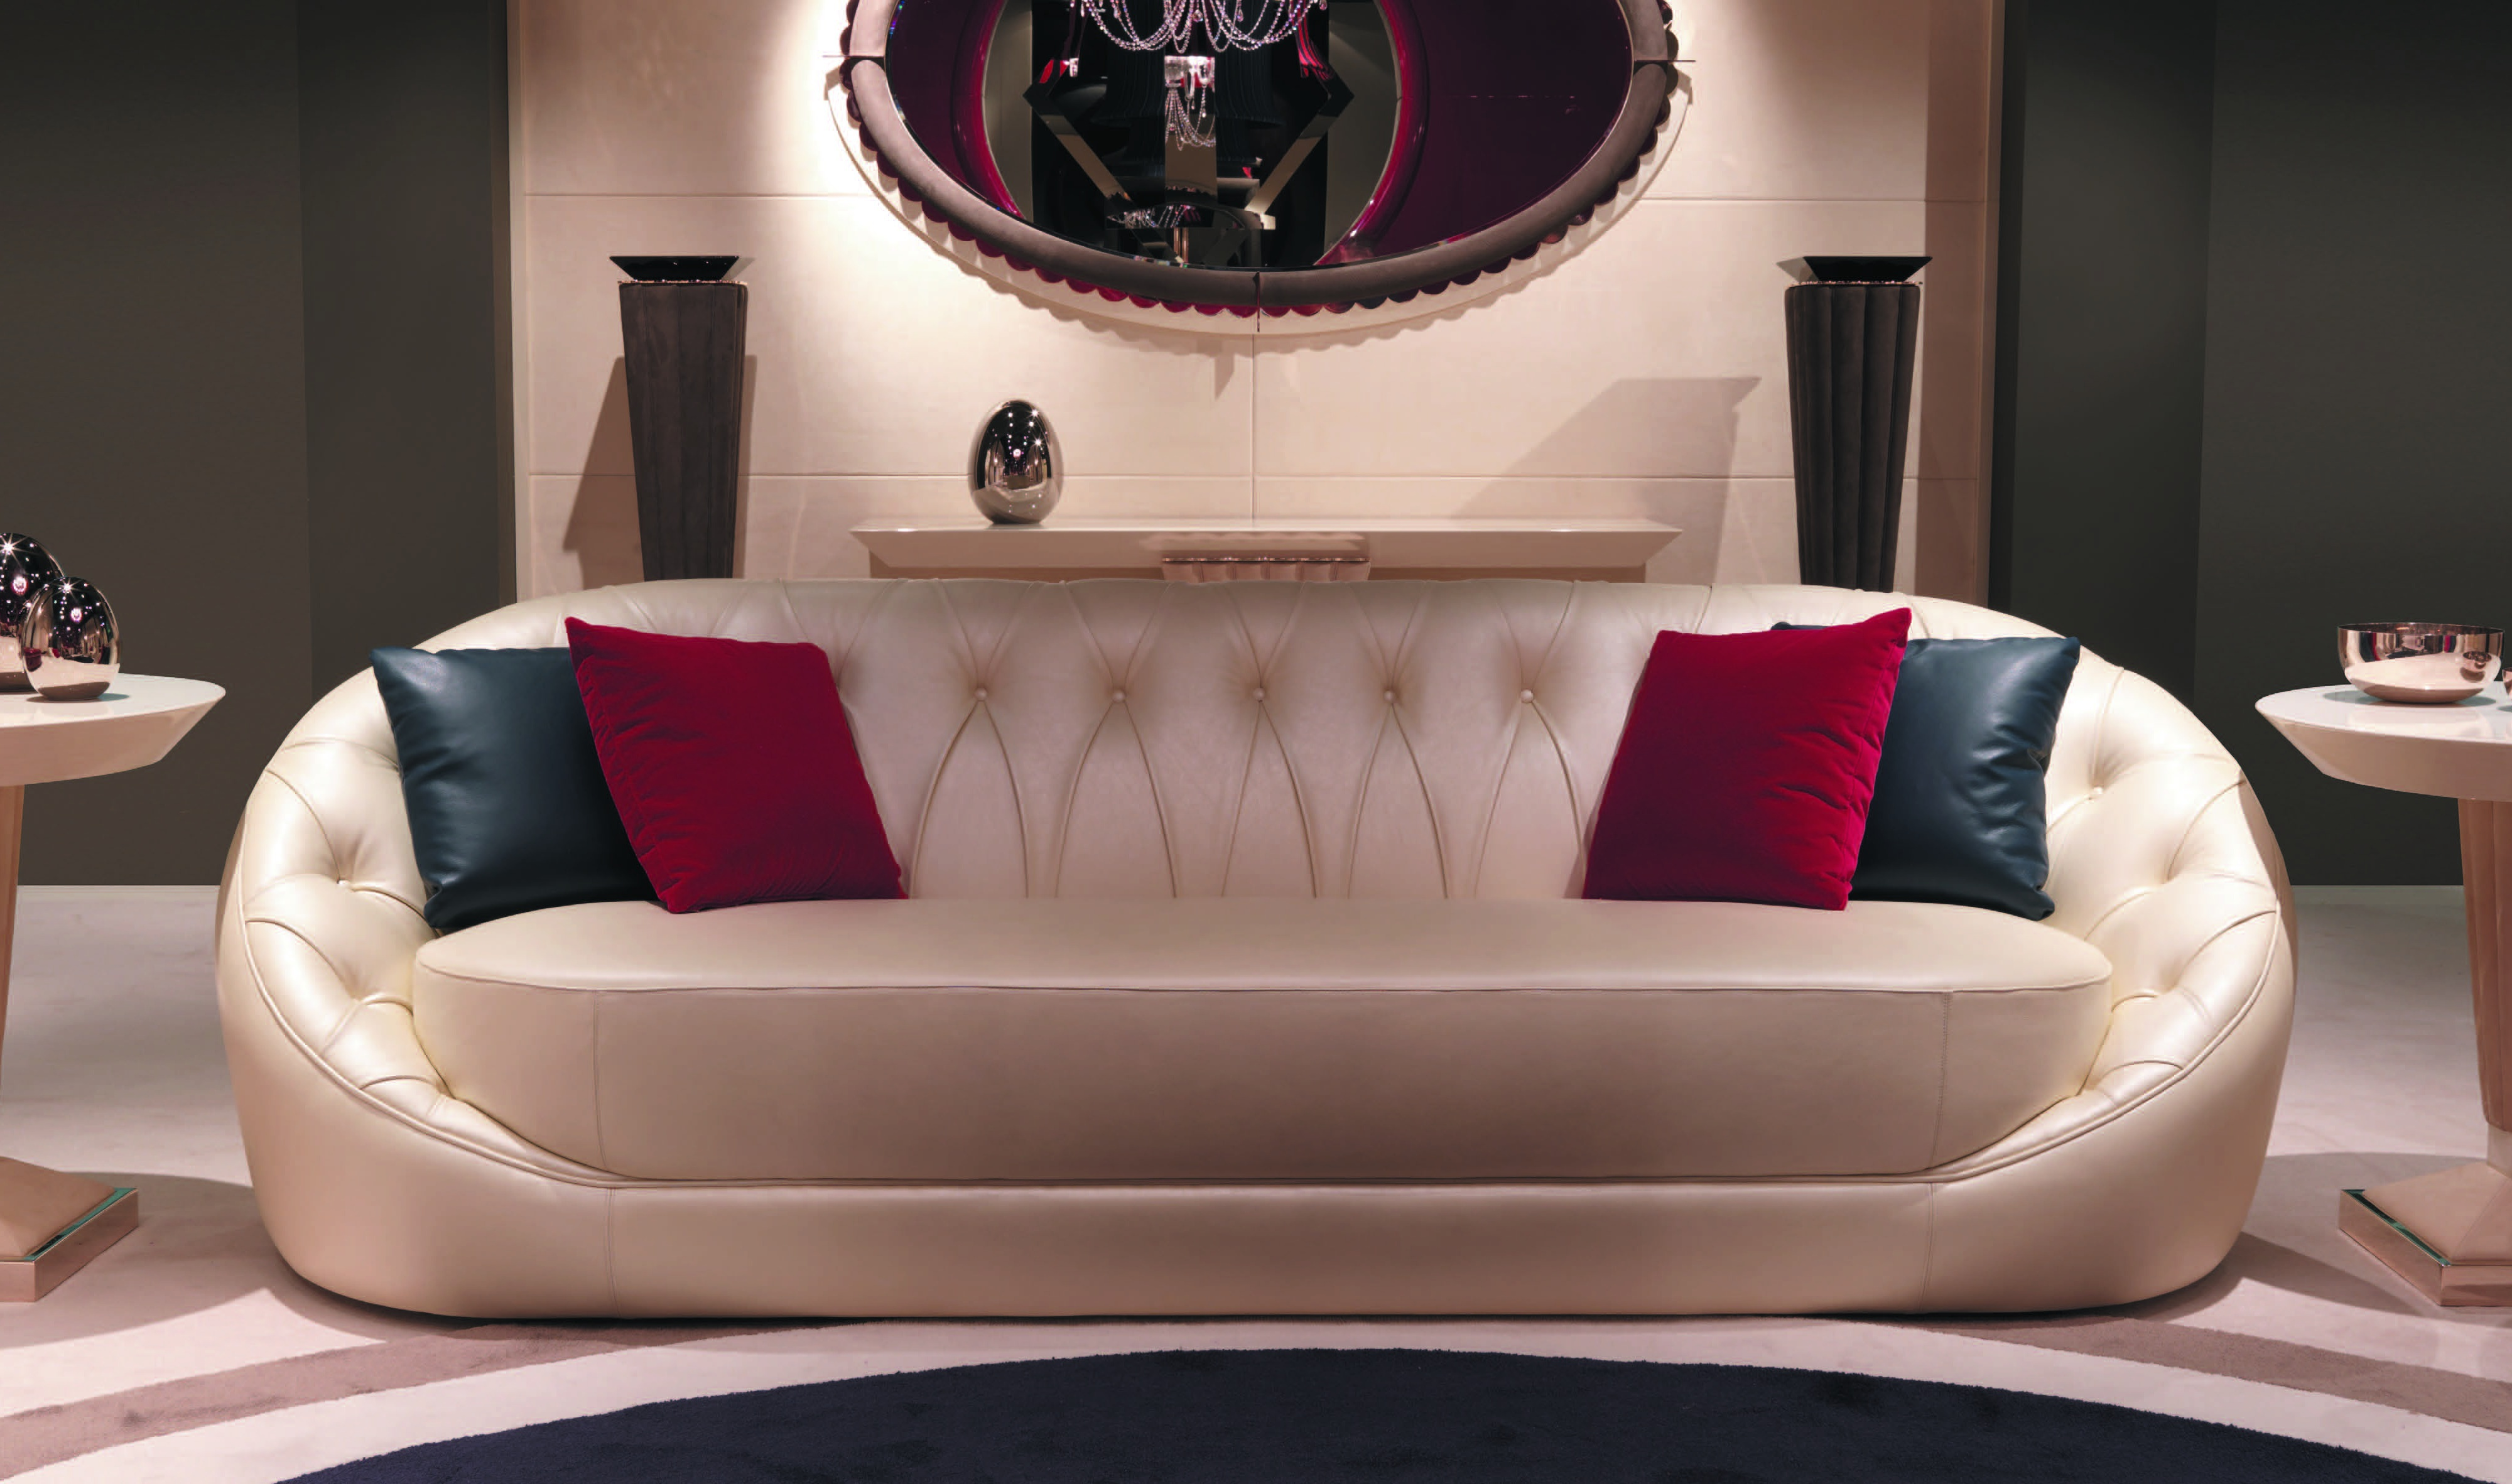 Living Room Sofa Set Designer Orion Turri Luxury